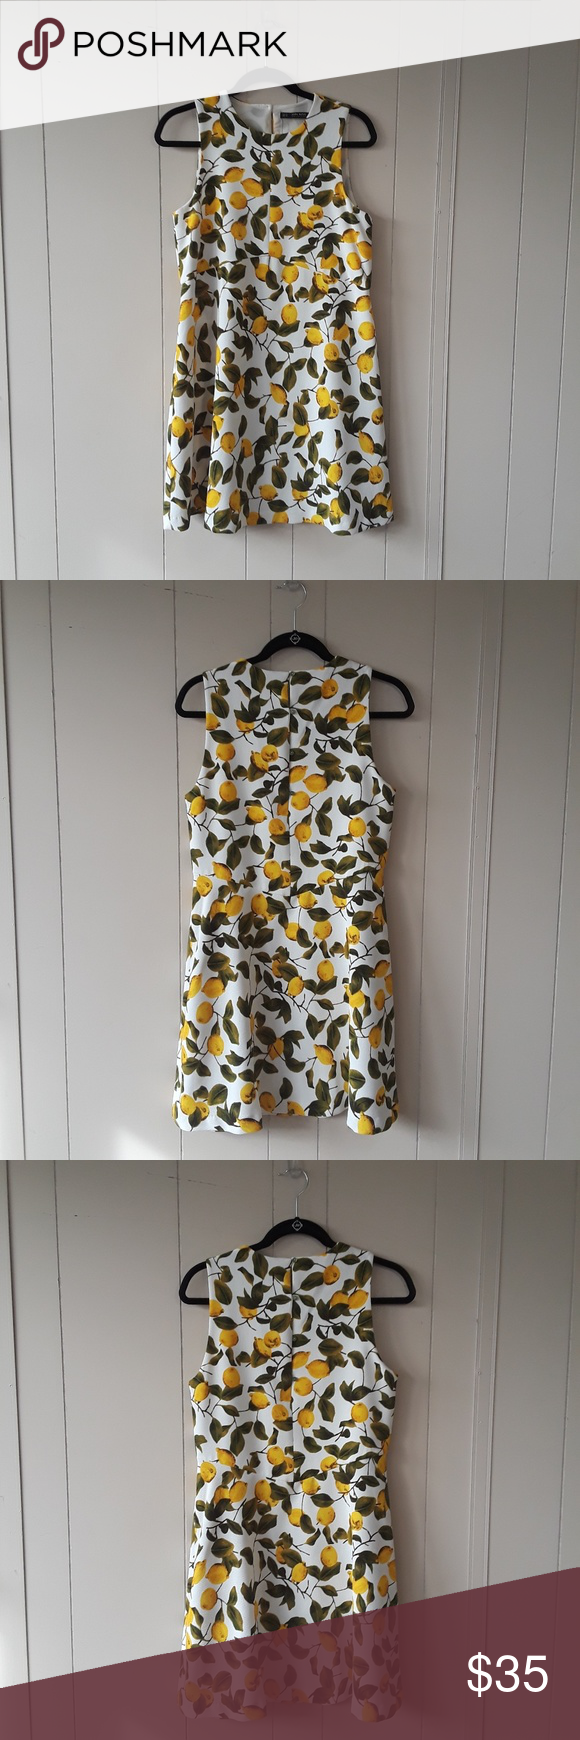 34683ef7 Zara Basics lemon dress with green button up back Very fun lemon print dress  with dainty